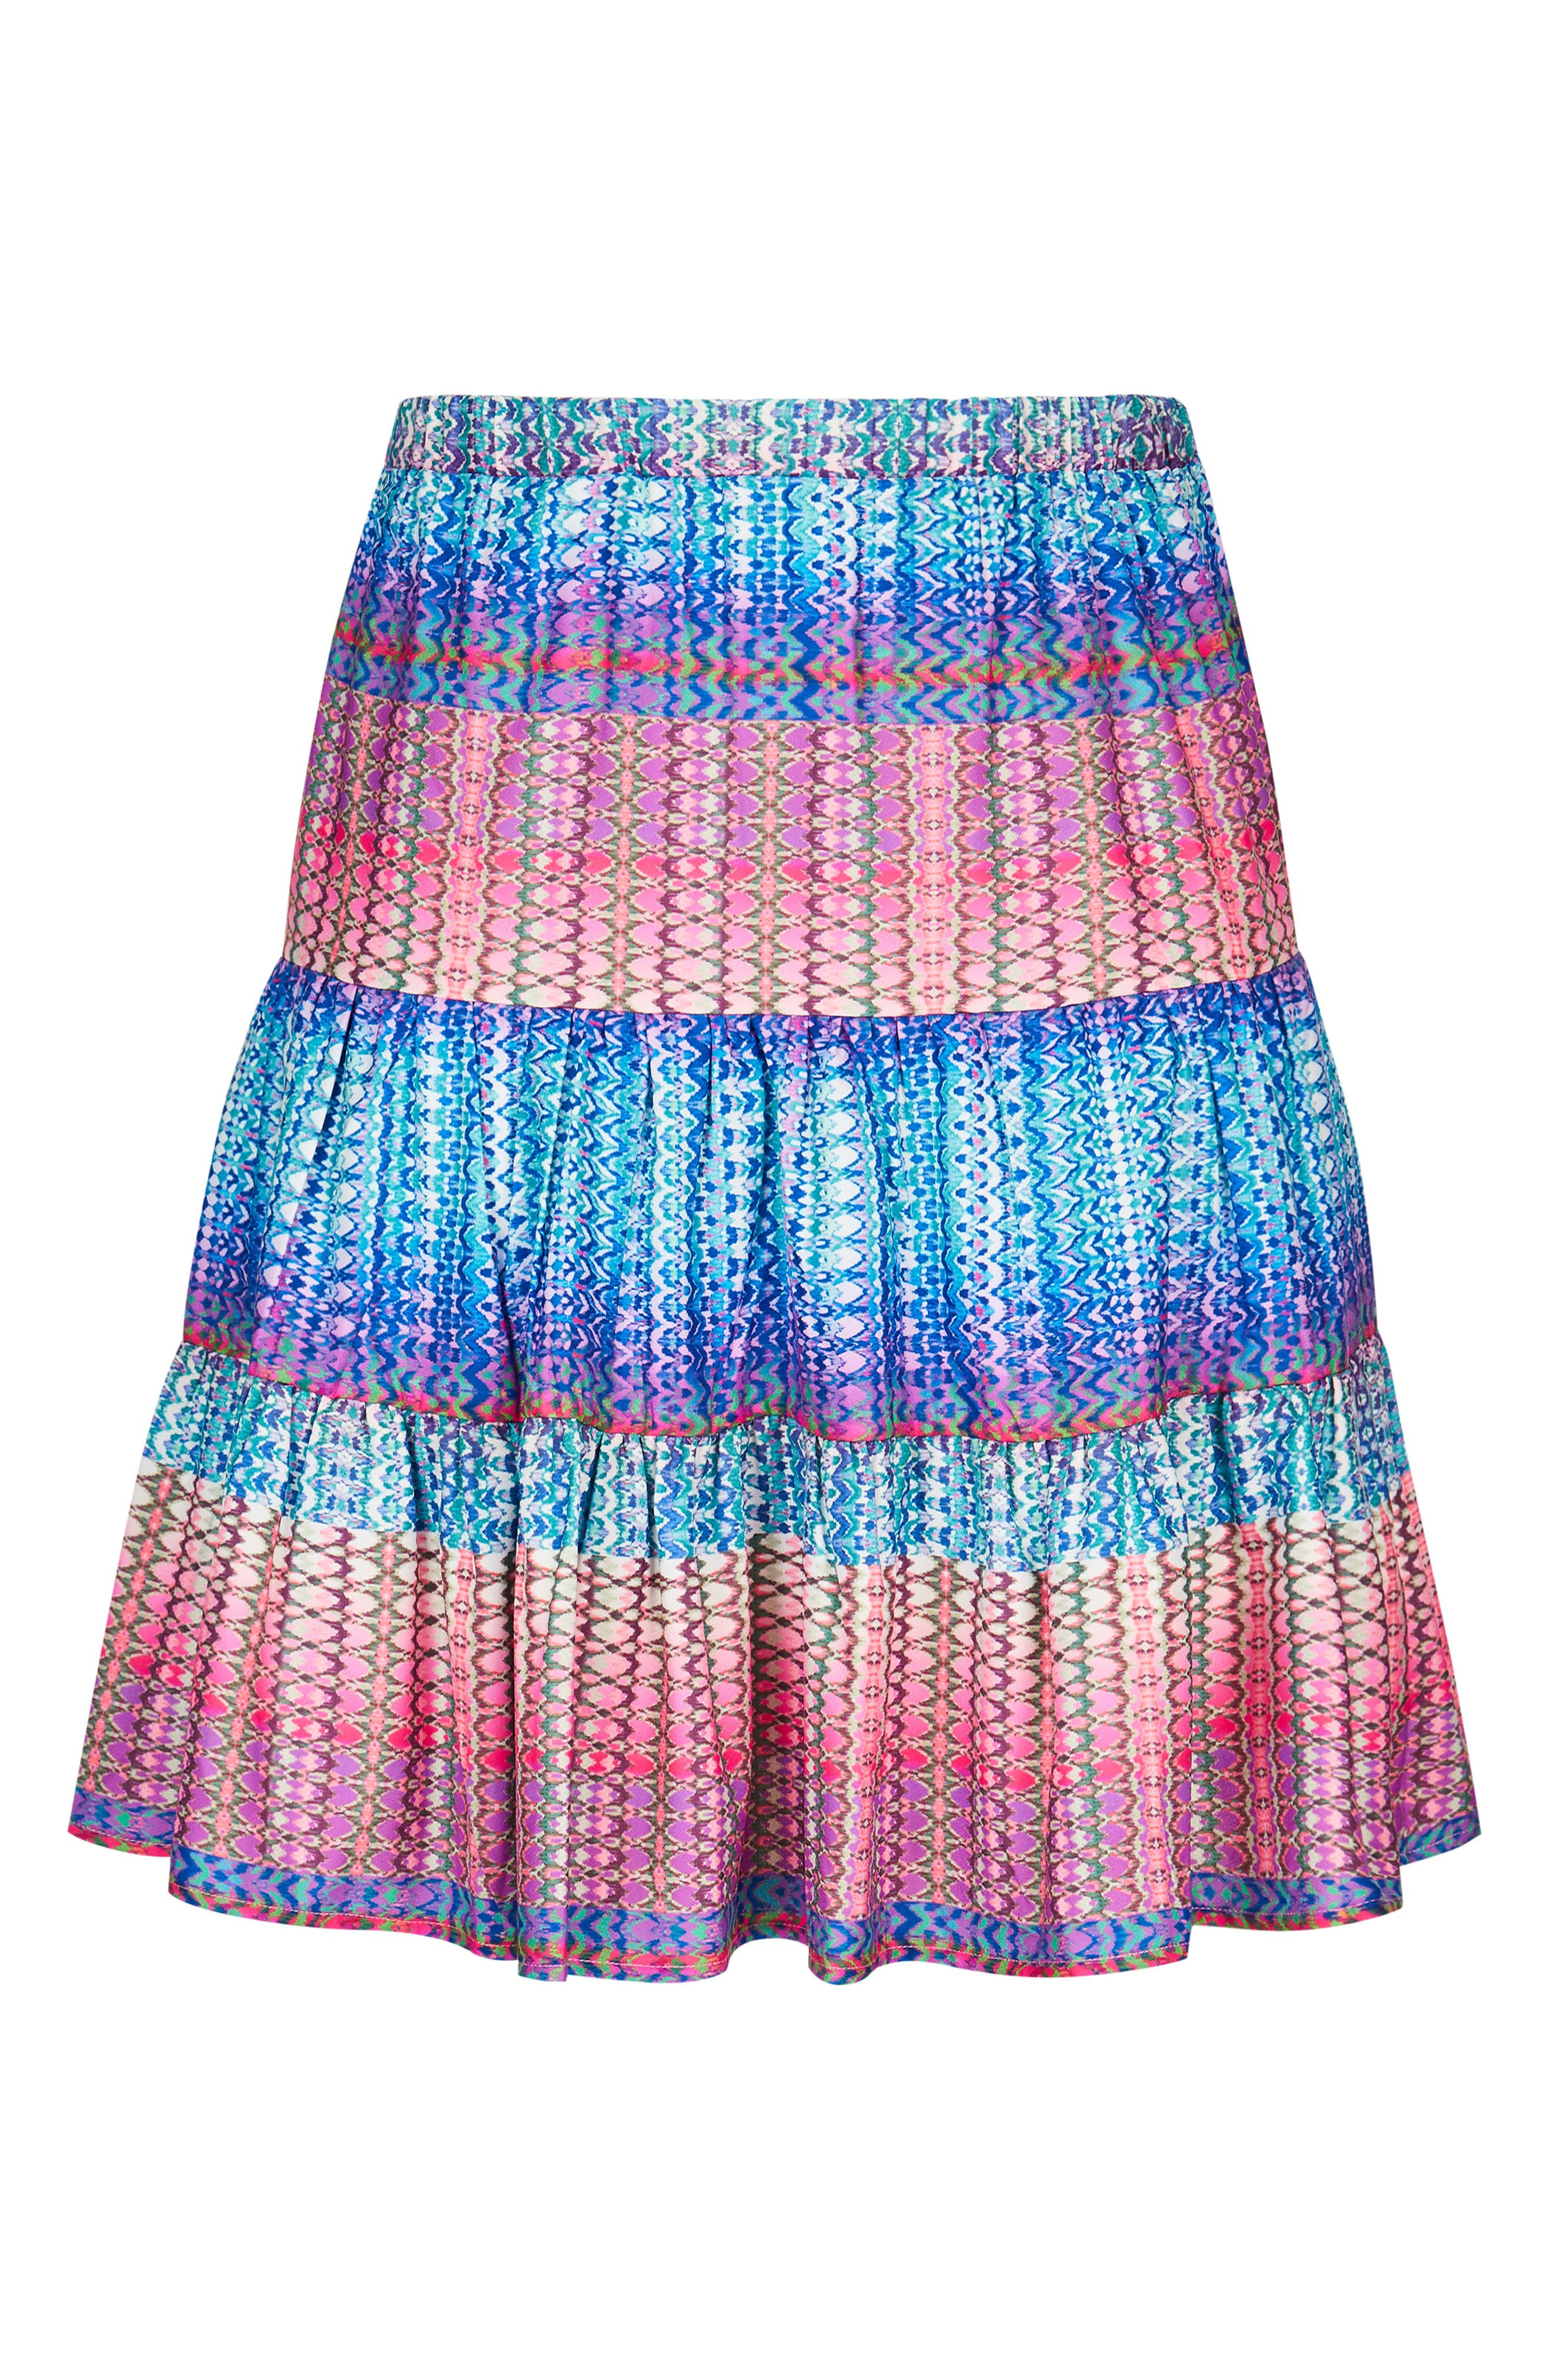 Tiered Up Skirt,                             Alternate thumbnail 3, color,                             KALEIDOSCOPE